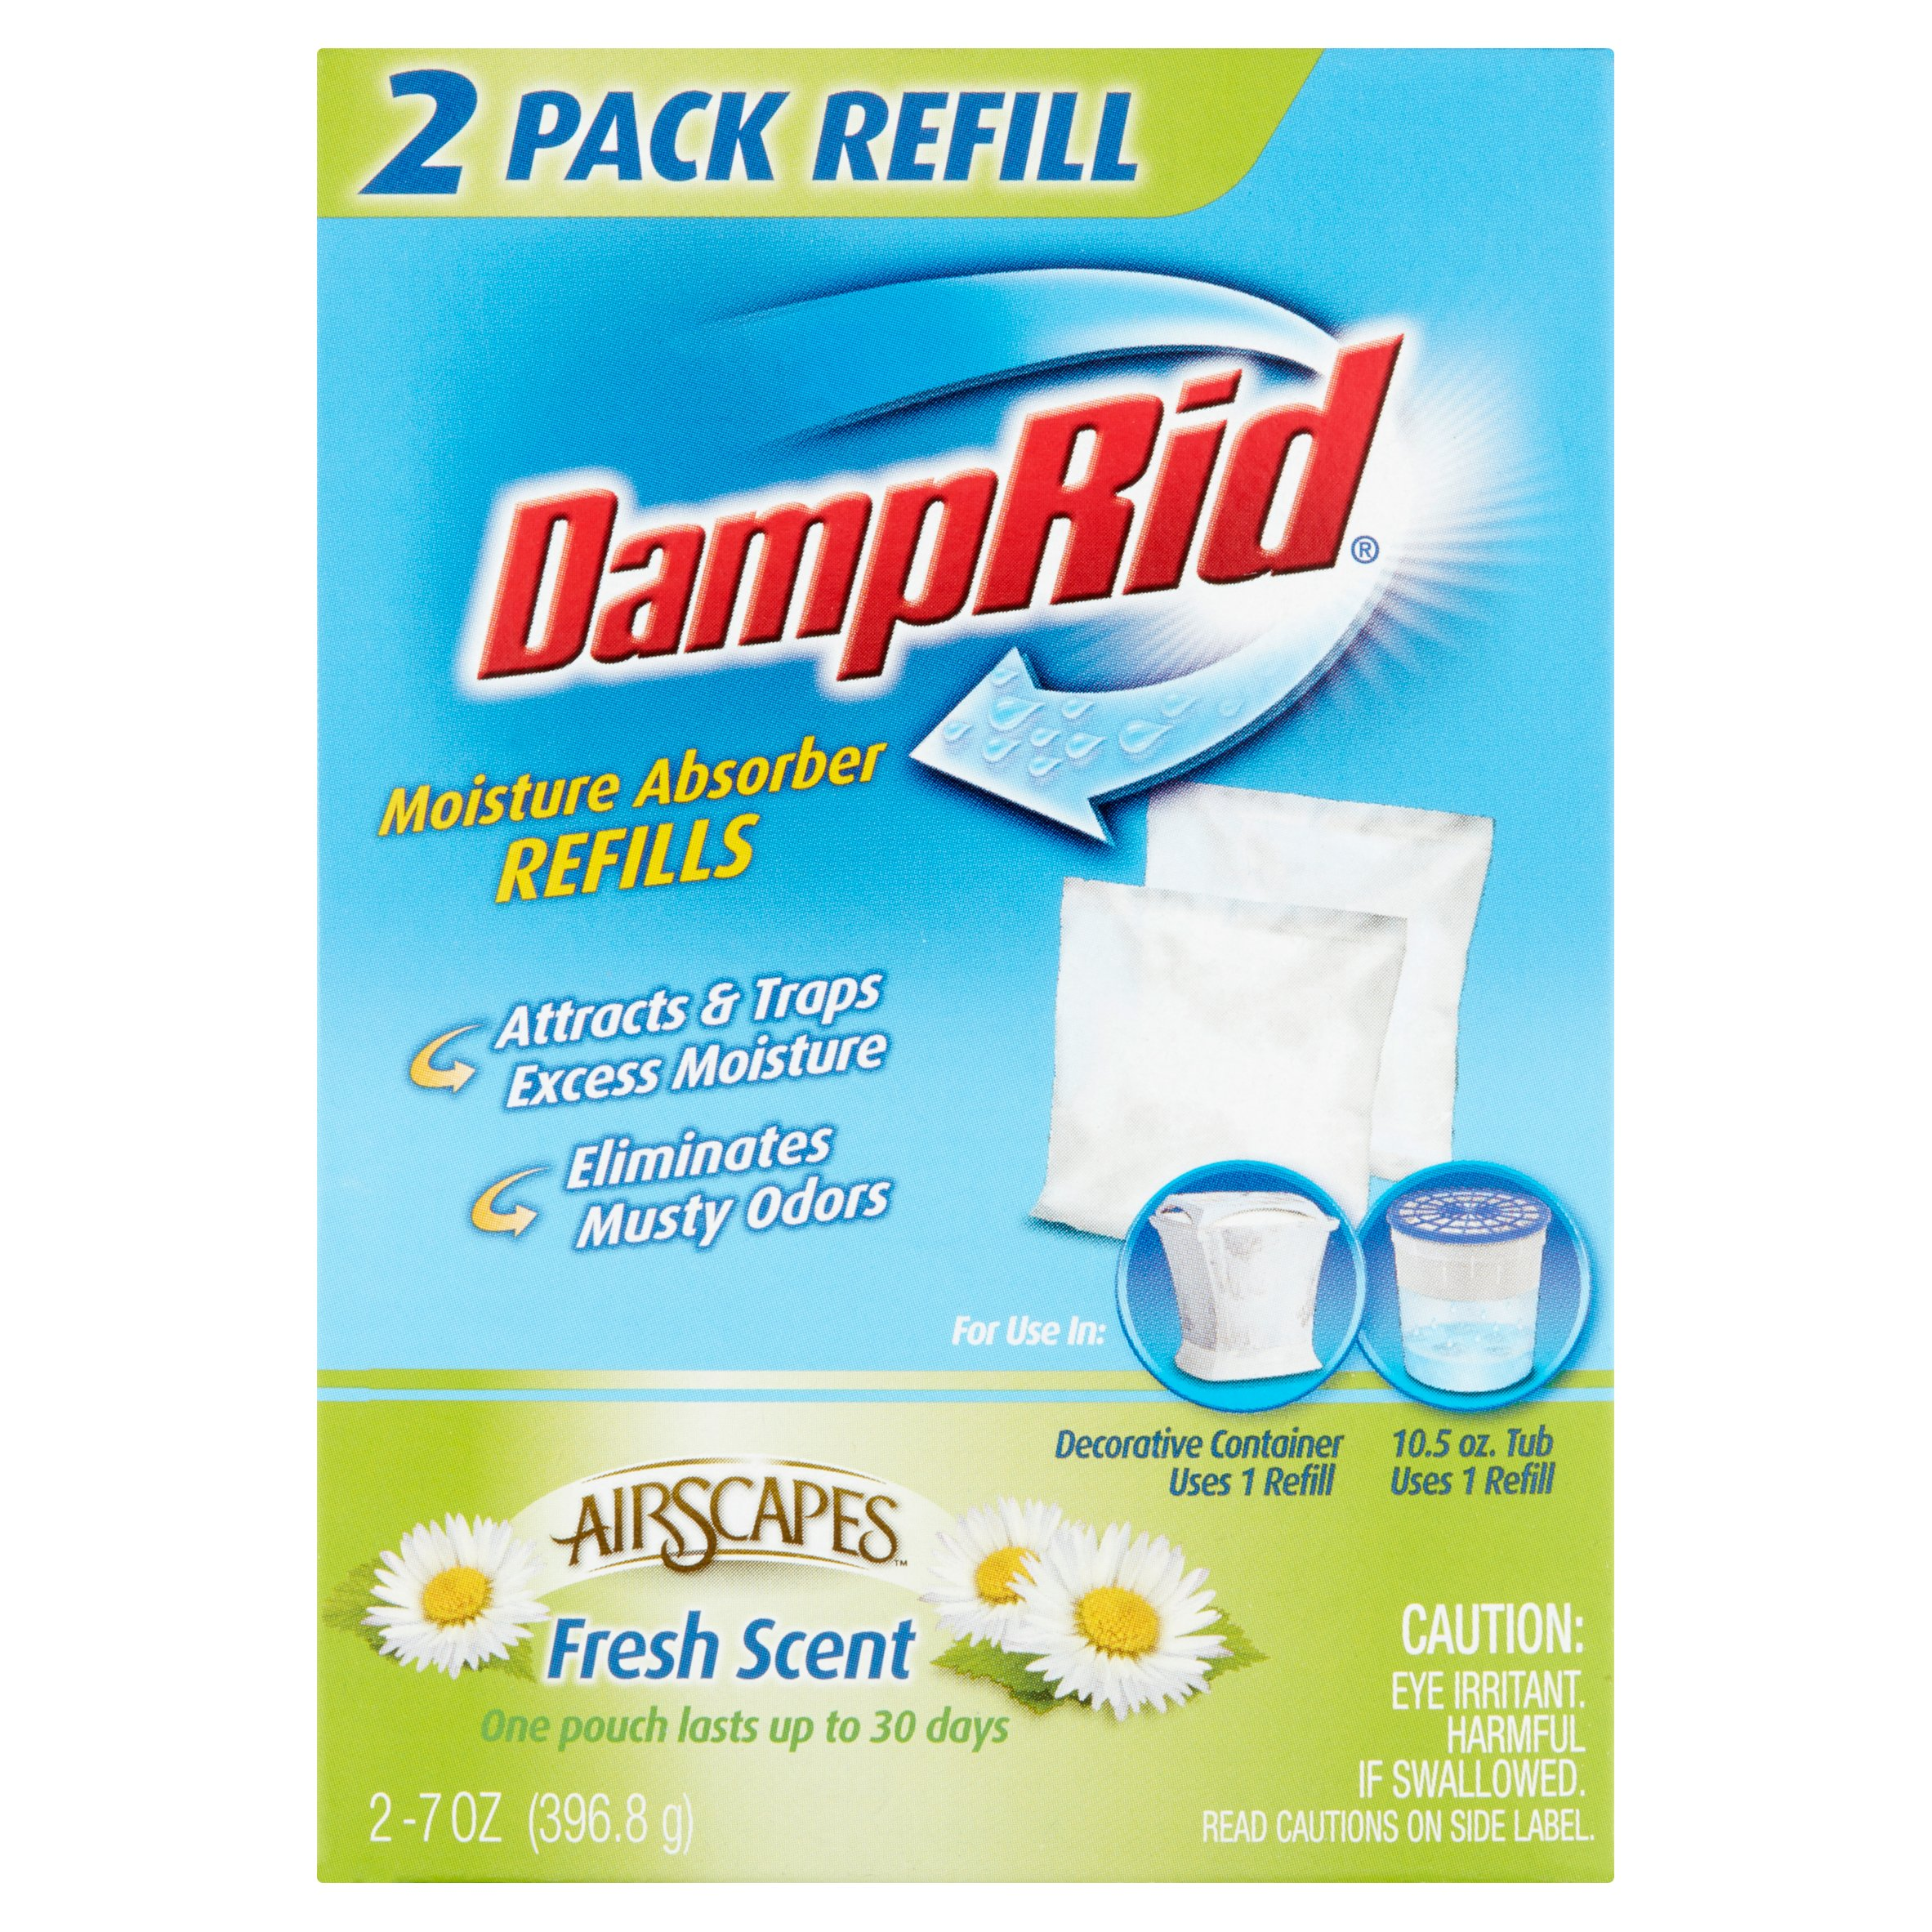 DampRid AirScapes Fresh Scent Refills, 2 ct, 7 oz